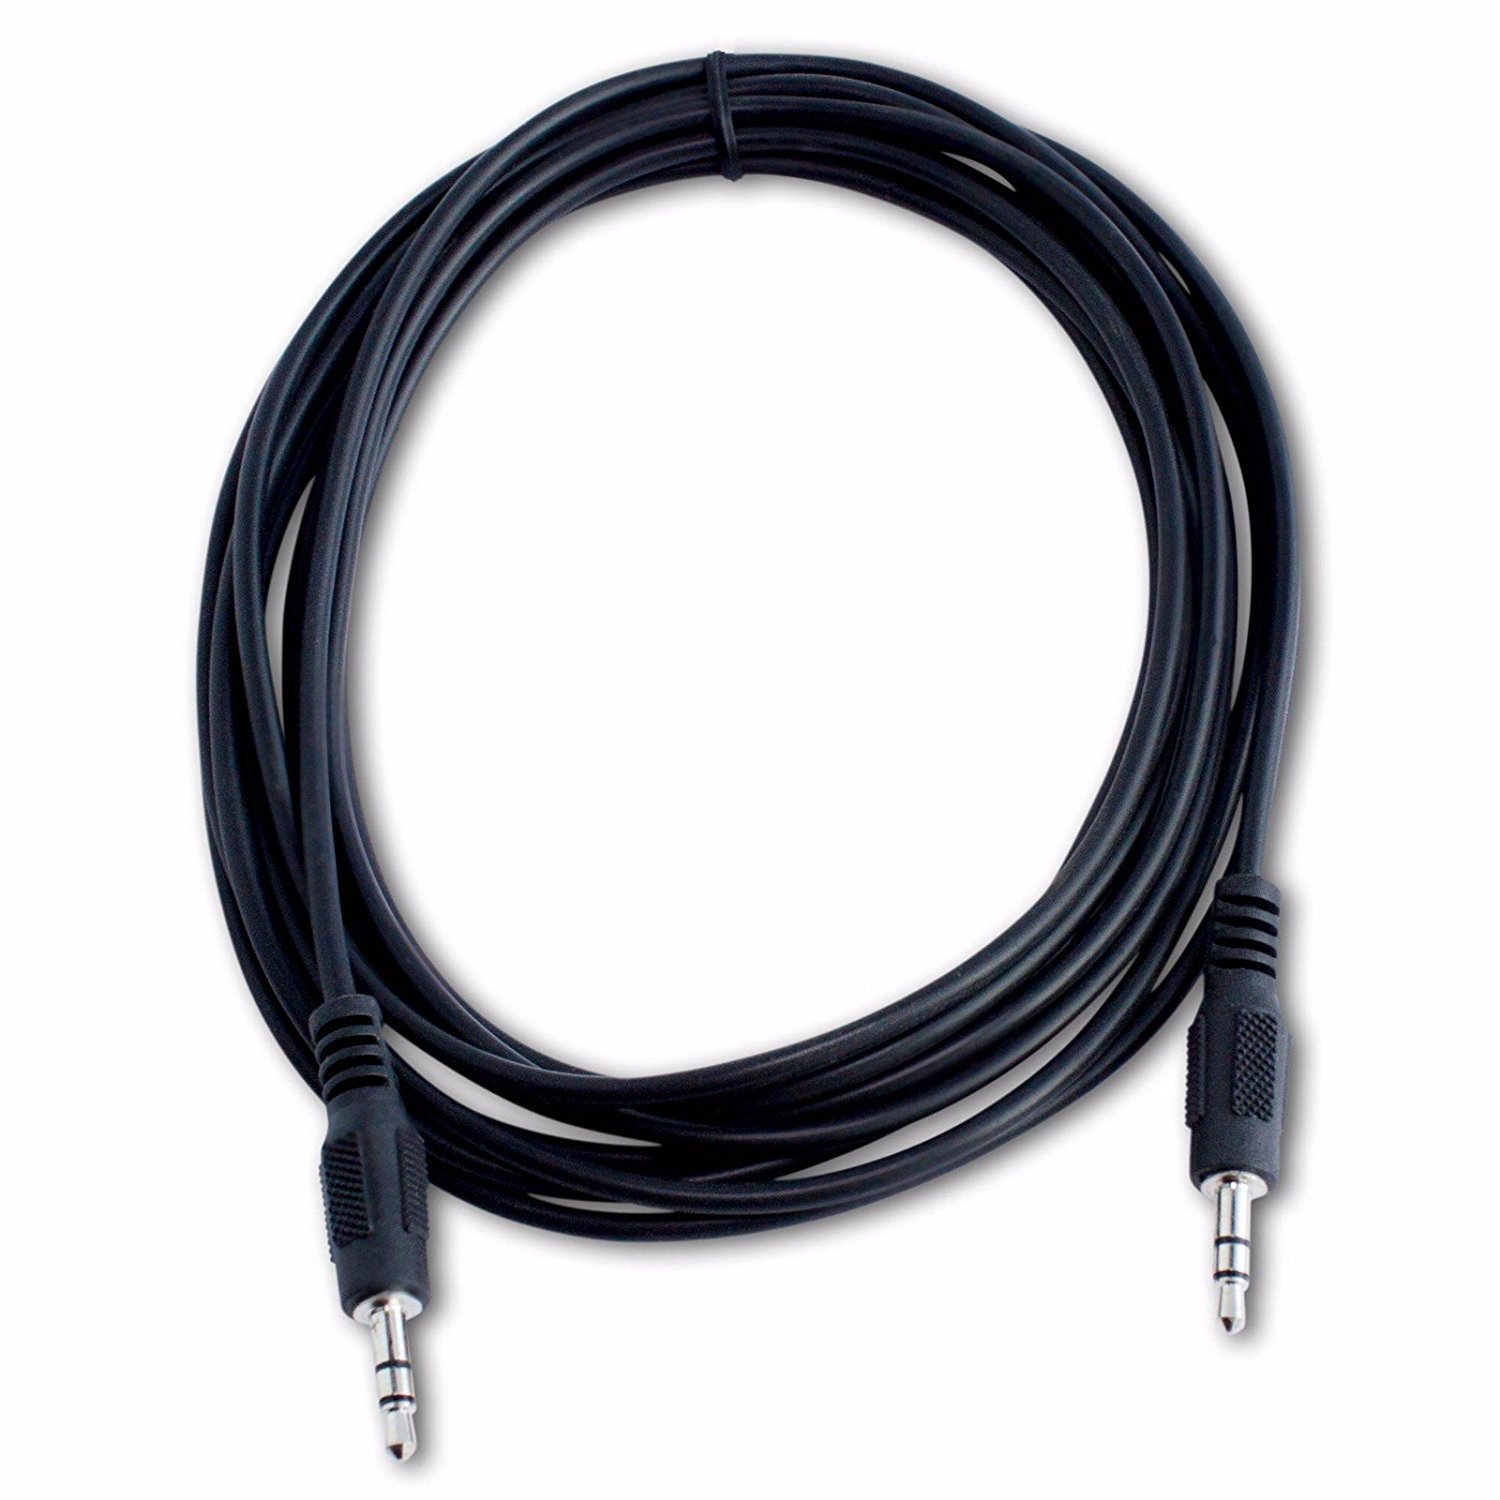 ReadyPlug 3.5mm Audio Cable for: Naxa NPB-240 Portable CD Boombox Line In/Aux Jack M/M (Black, 12 Feet)